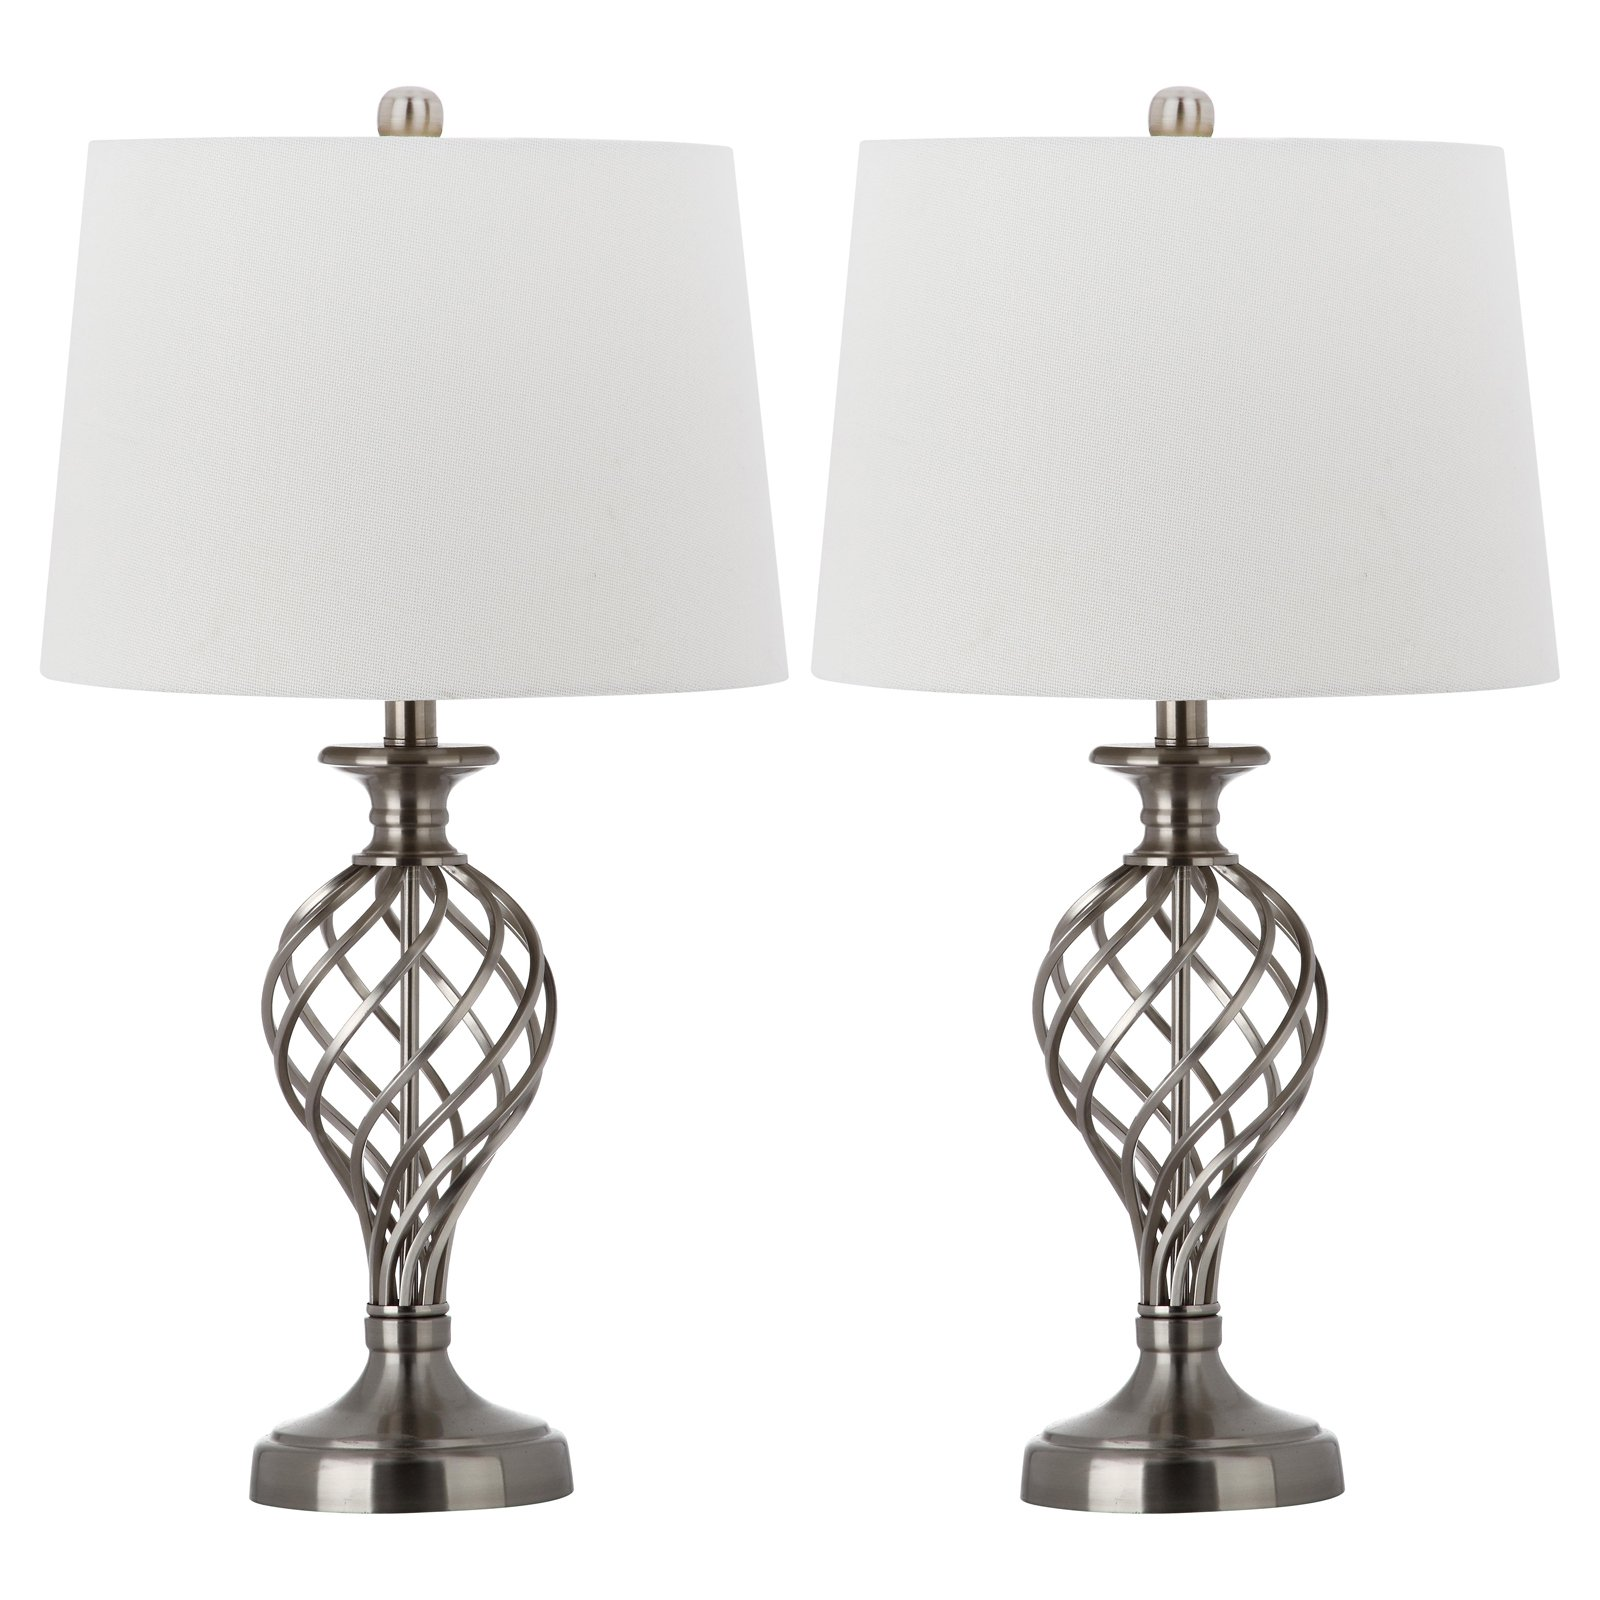 Safavieh Lattice Urn Table Lamp With Cfl Bulb Nickel With Off White